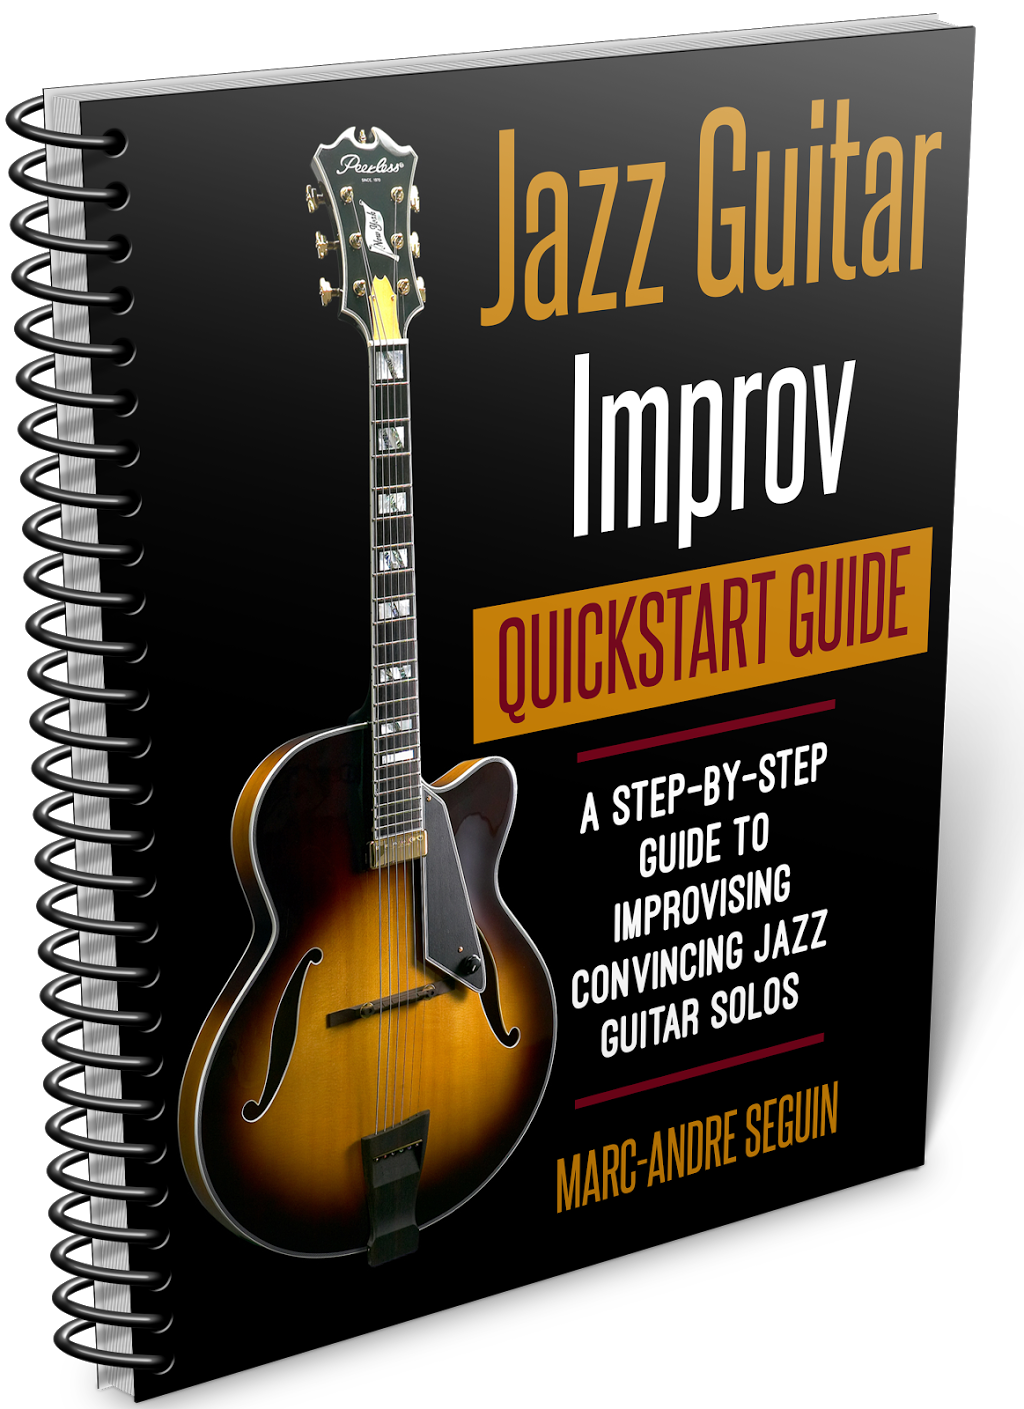 Jazz Guitar Improv Quickstart Guide